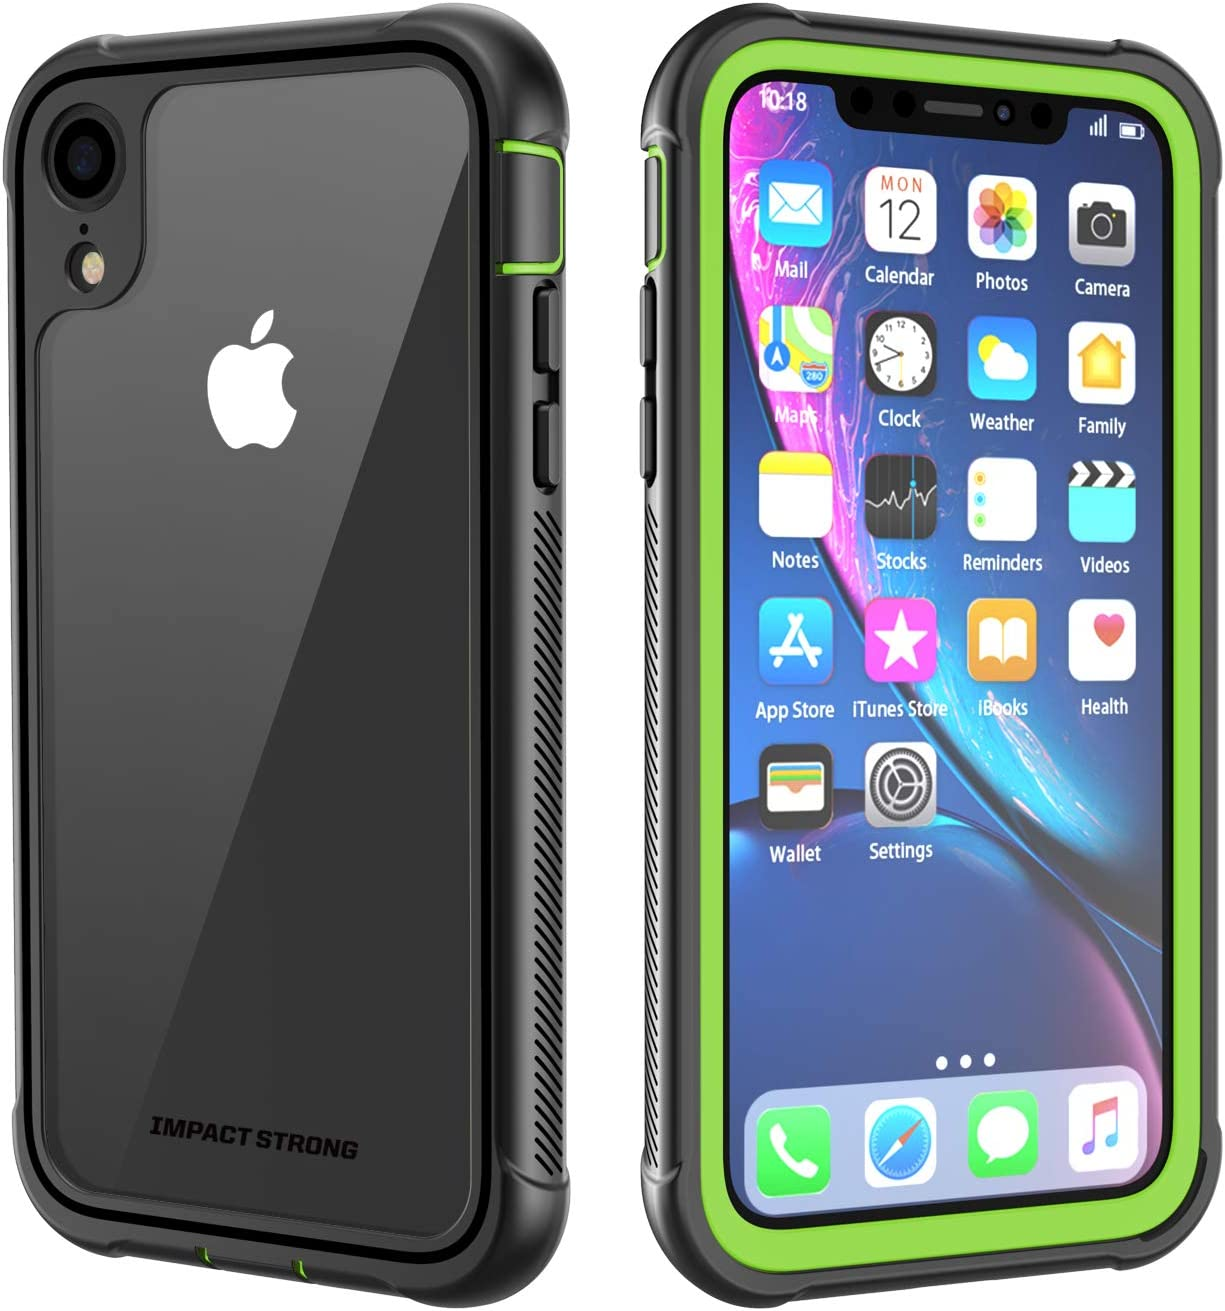 ImpactStrong iPhone XR Clear Case, Ultra Protective Case with Built-in Clear Screen Protector Clear Transparent Full Body Cover for iPhone XR 2018 6.1 inch (Lime Green)